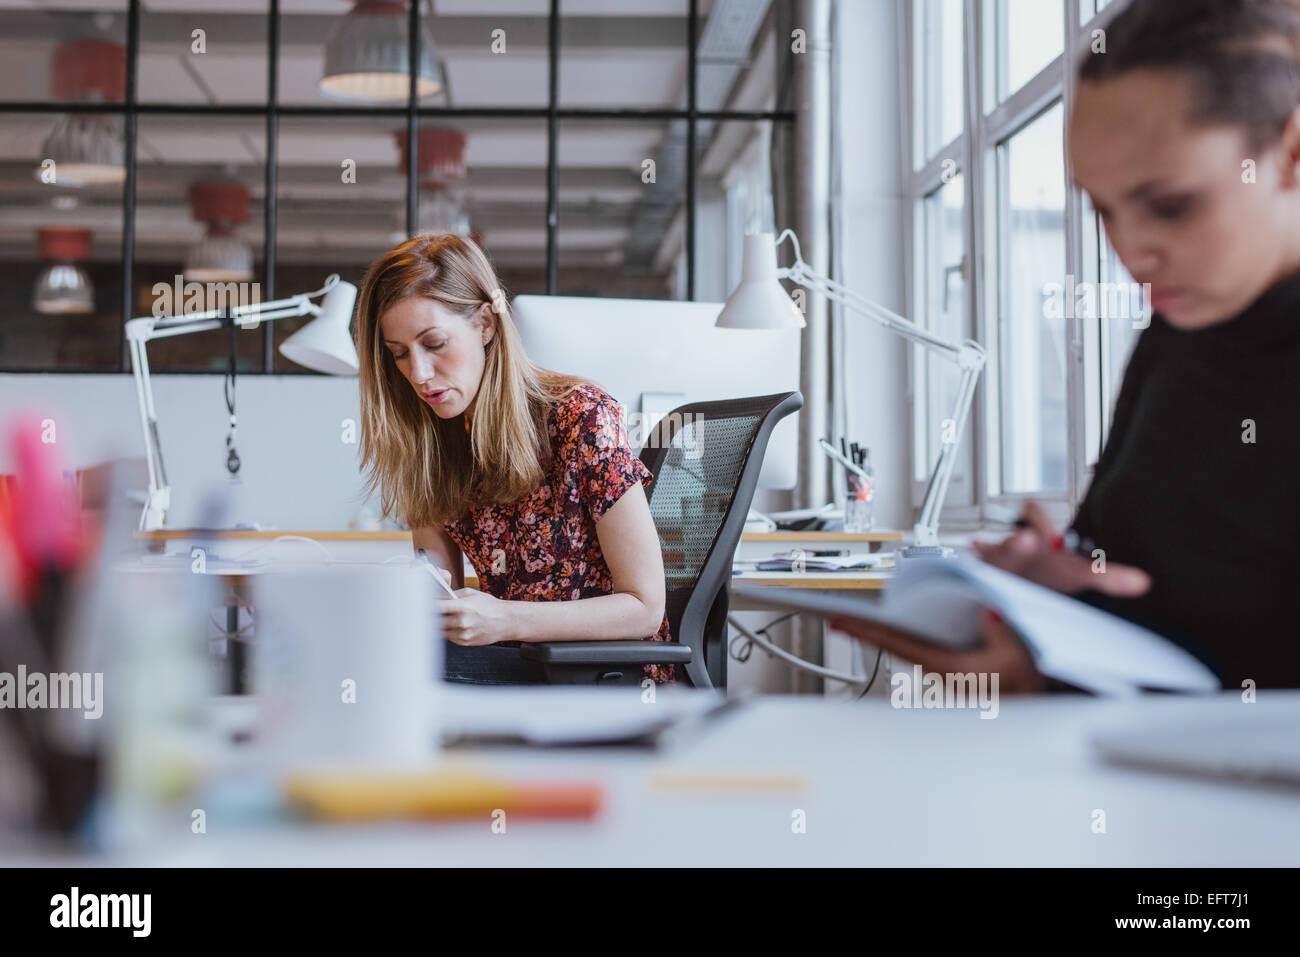 Image of young woman busy working at her desk with coworker reading a report in front. - Stock Image